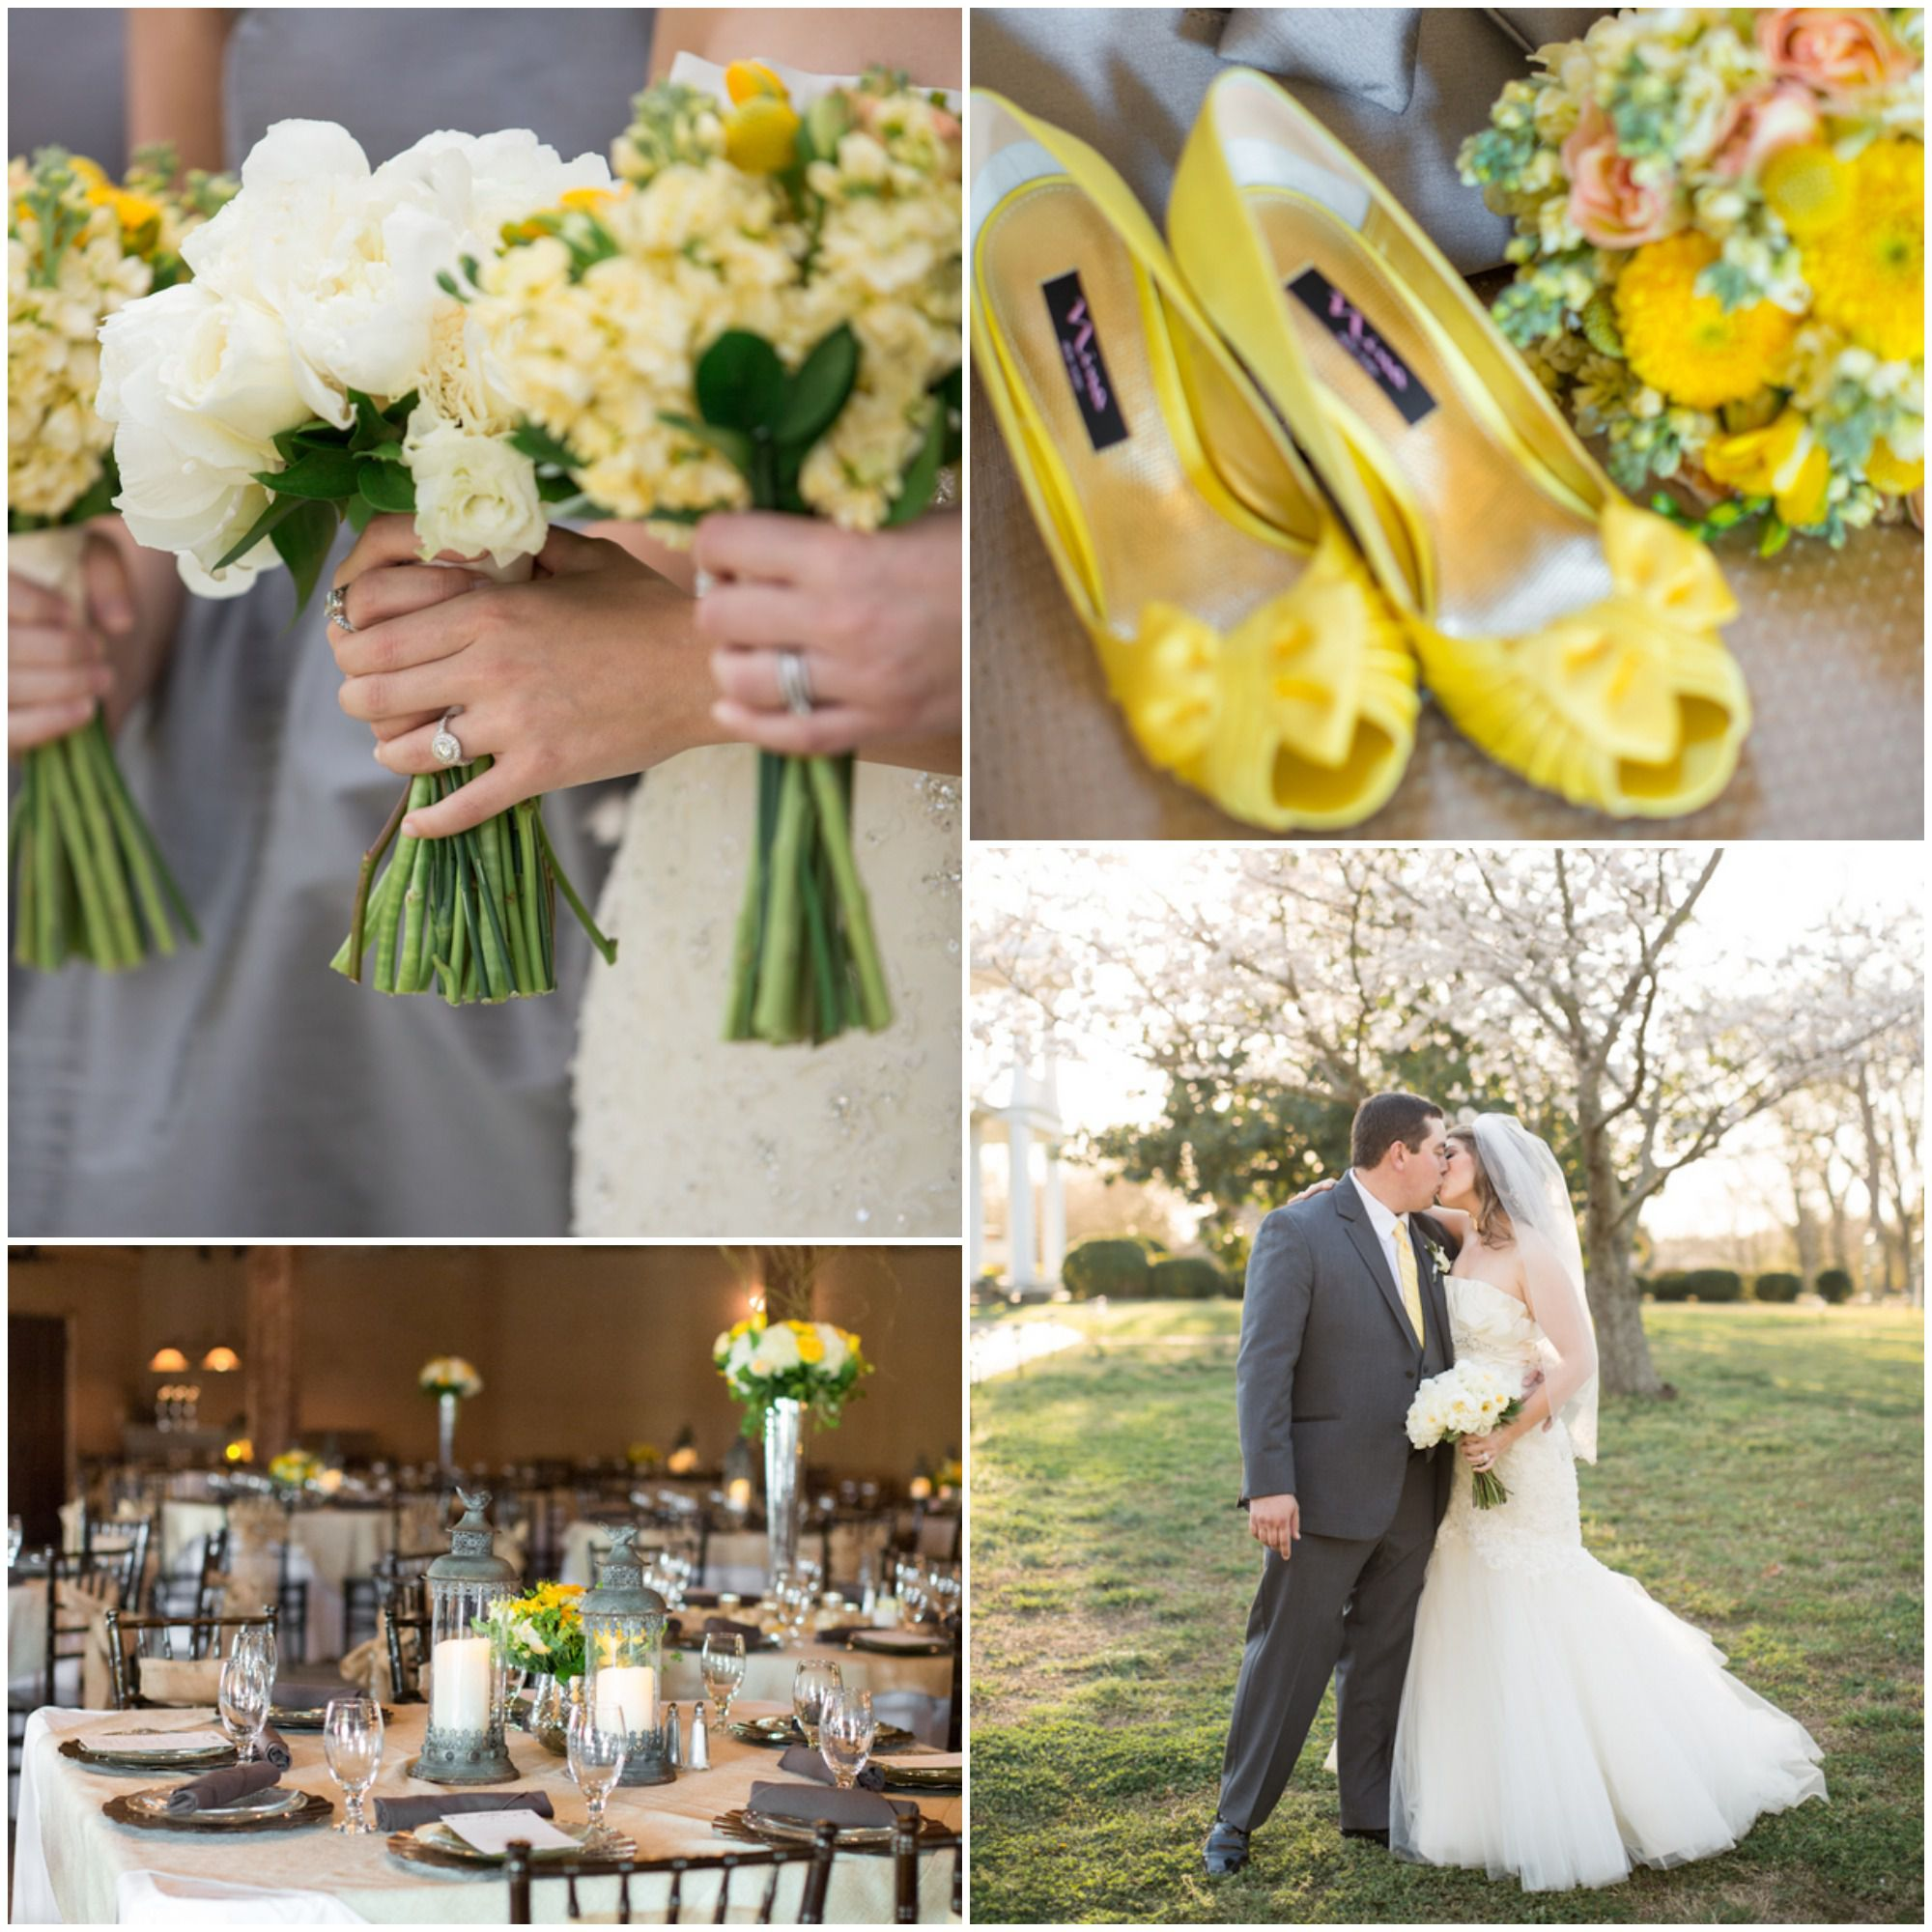 ... Yellow Wedding Color ...  sc 1 st  Rustic Wedding Chic & Country Yellow Themed Wedding - Rustic Wedding Chic